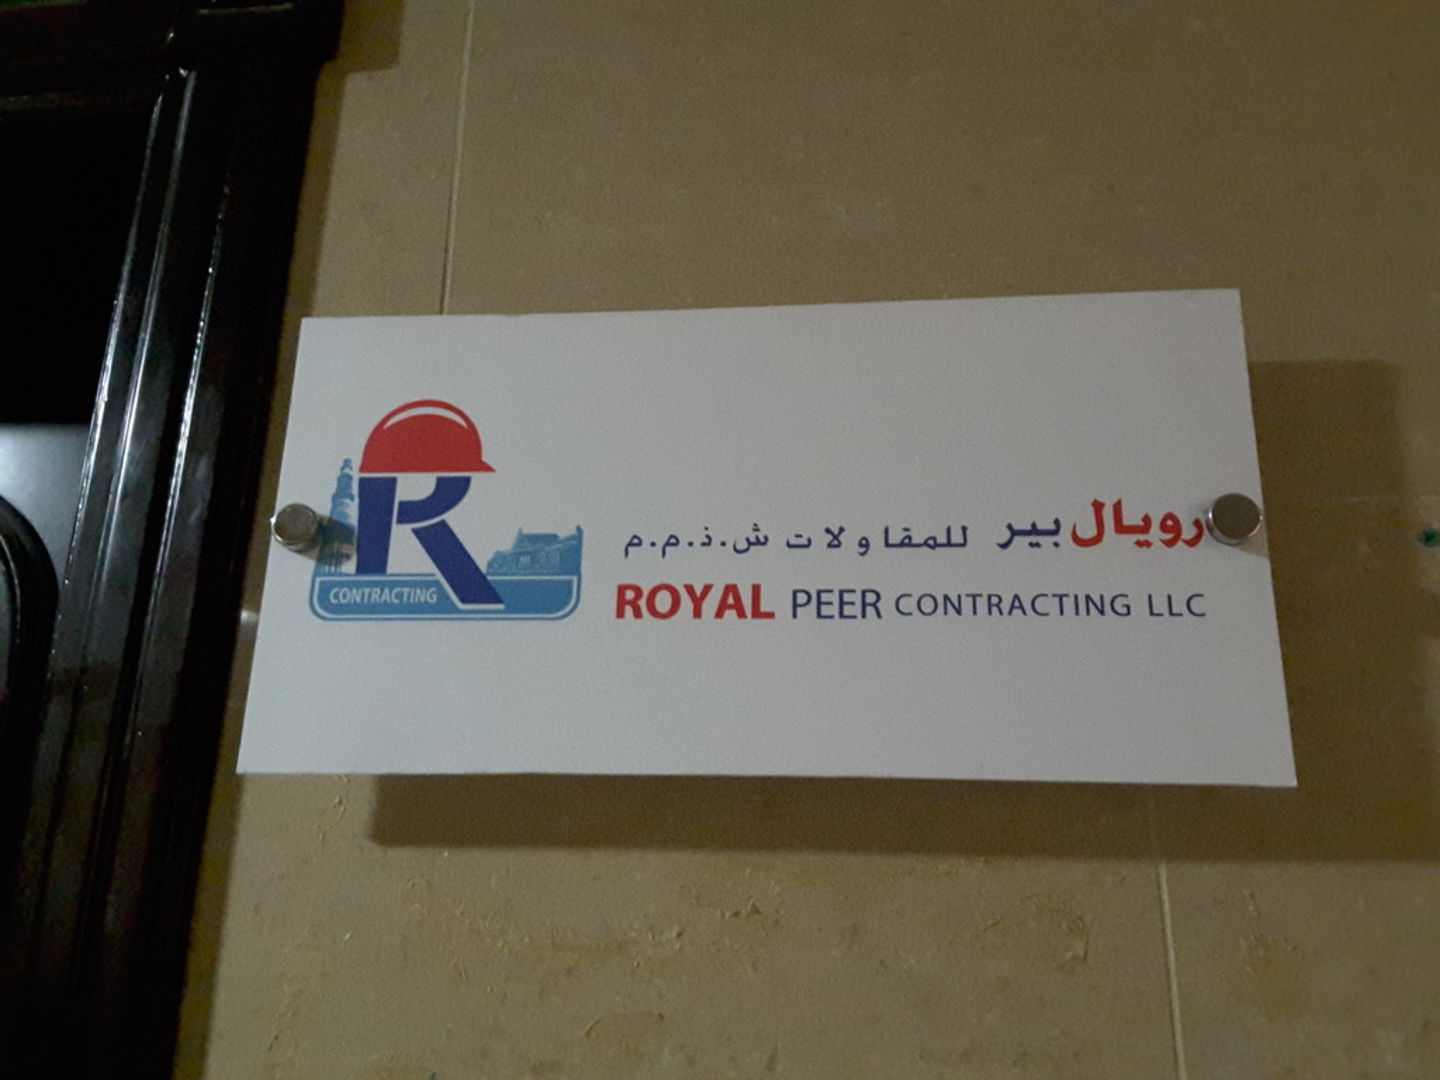 Walif-business-royal-peer-contracting